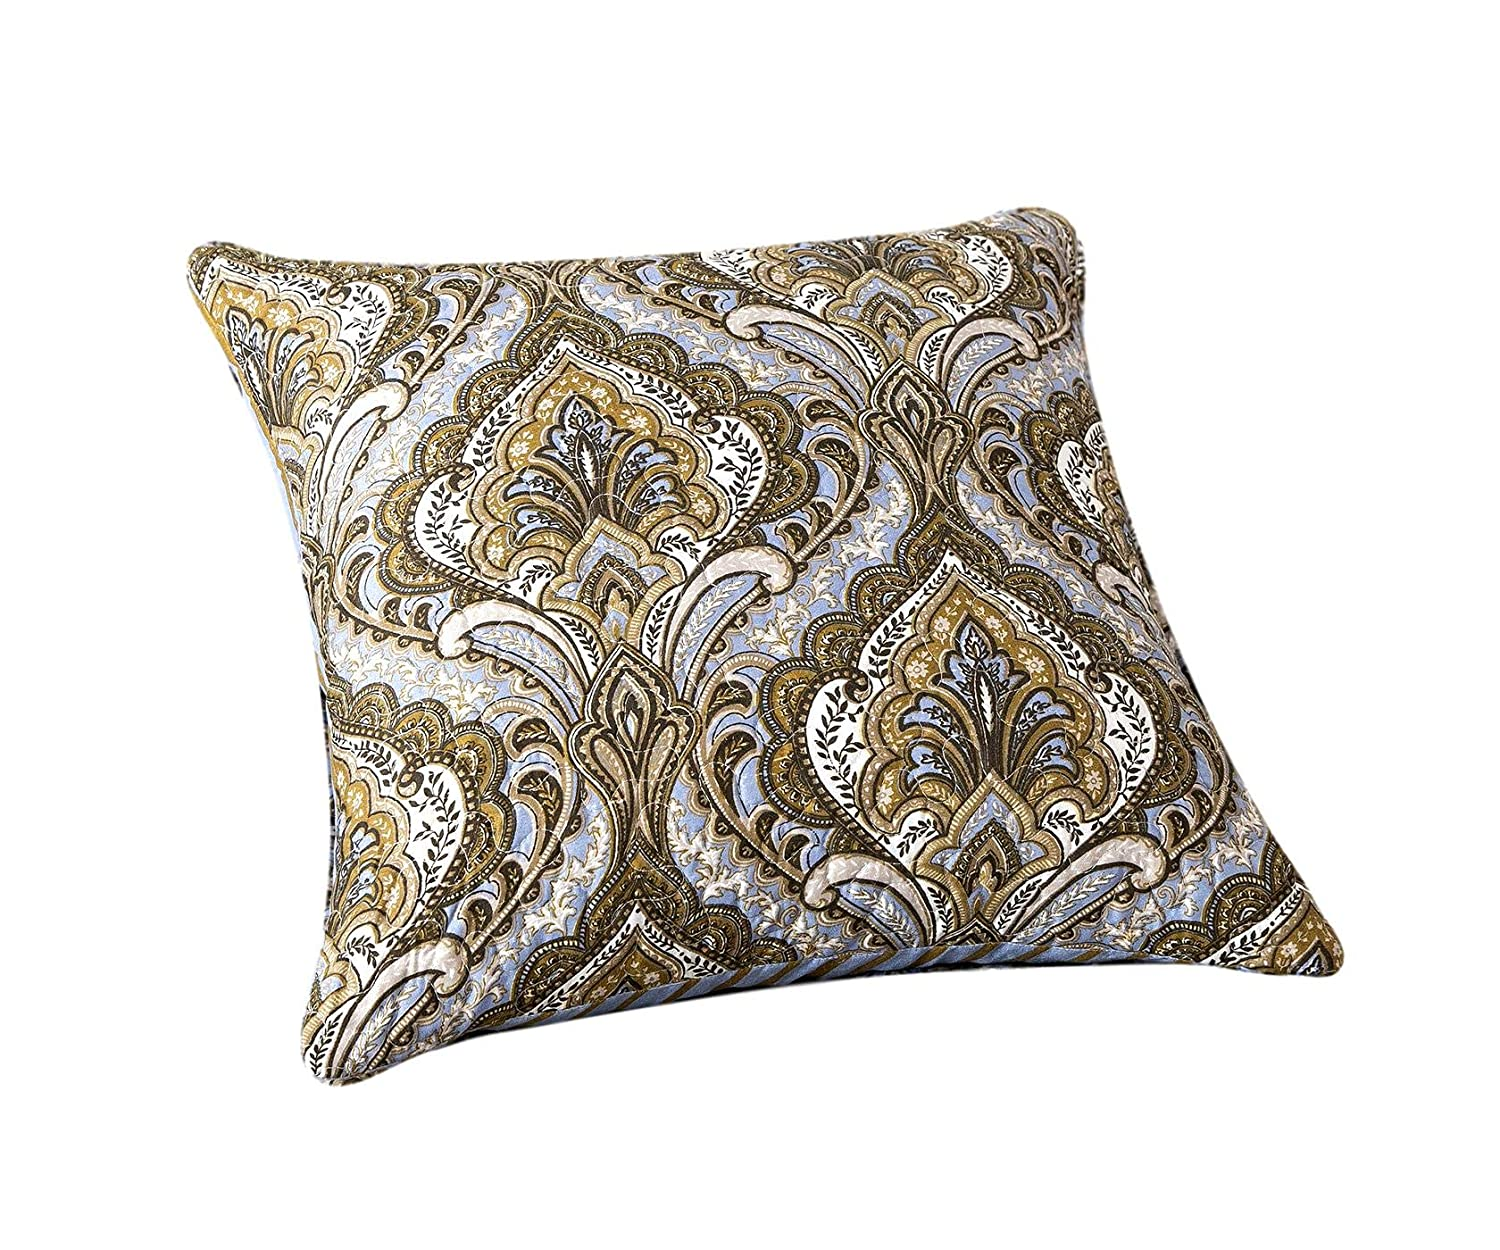 Tache Bohemian Spades Moroccan Neutral Olive Green Blue - Traditional Style Paisley Floral Damask Matelassé Cushion Covers - 2 Pieces - 18x18